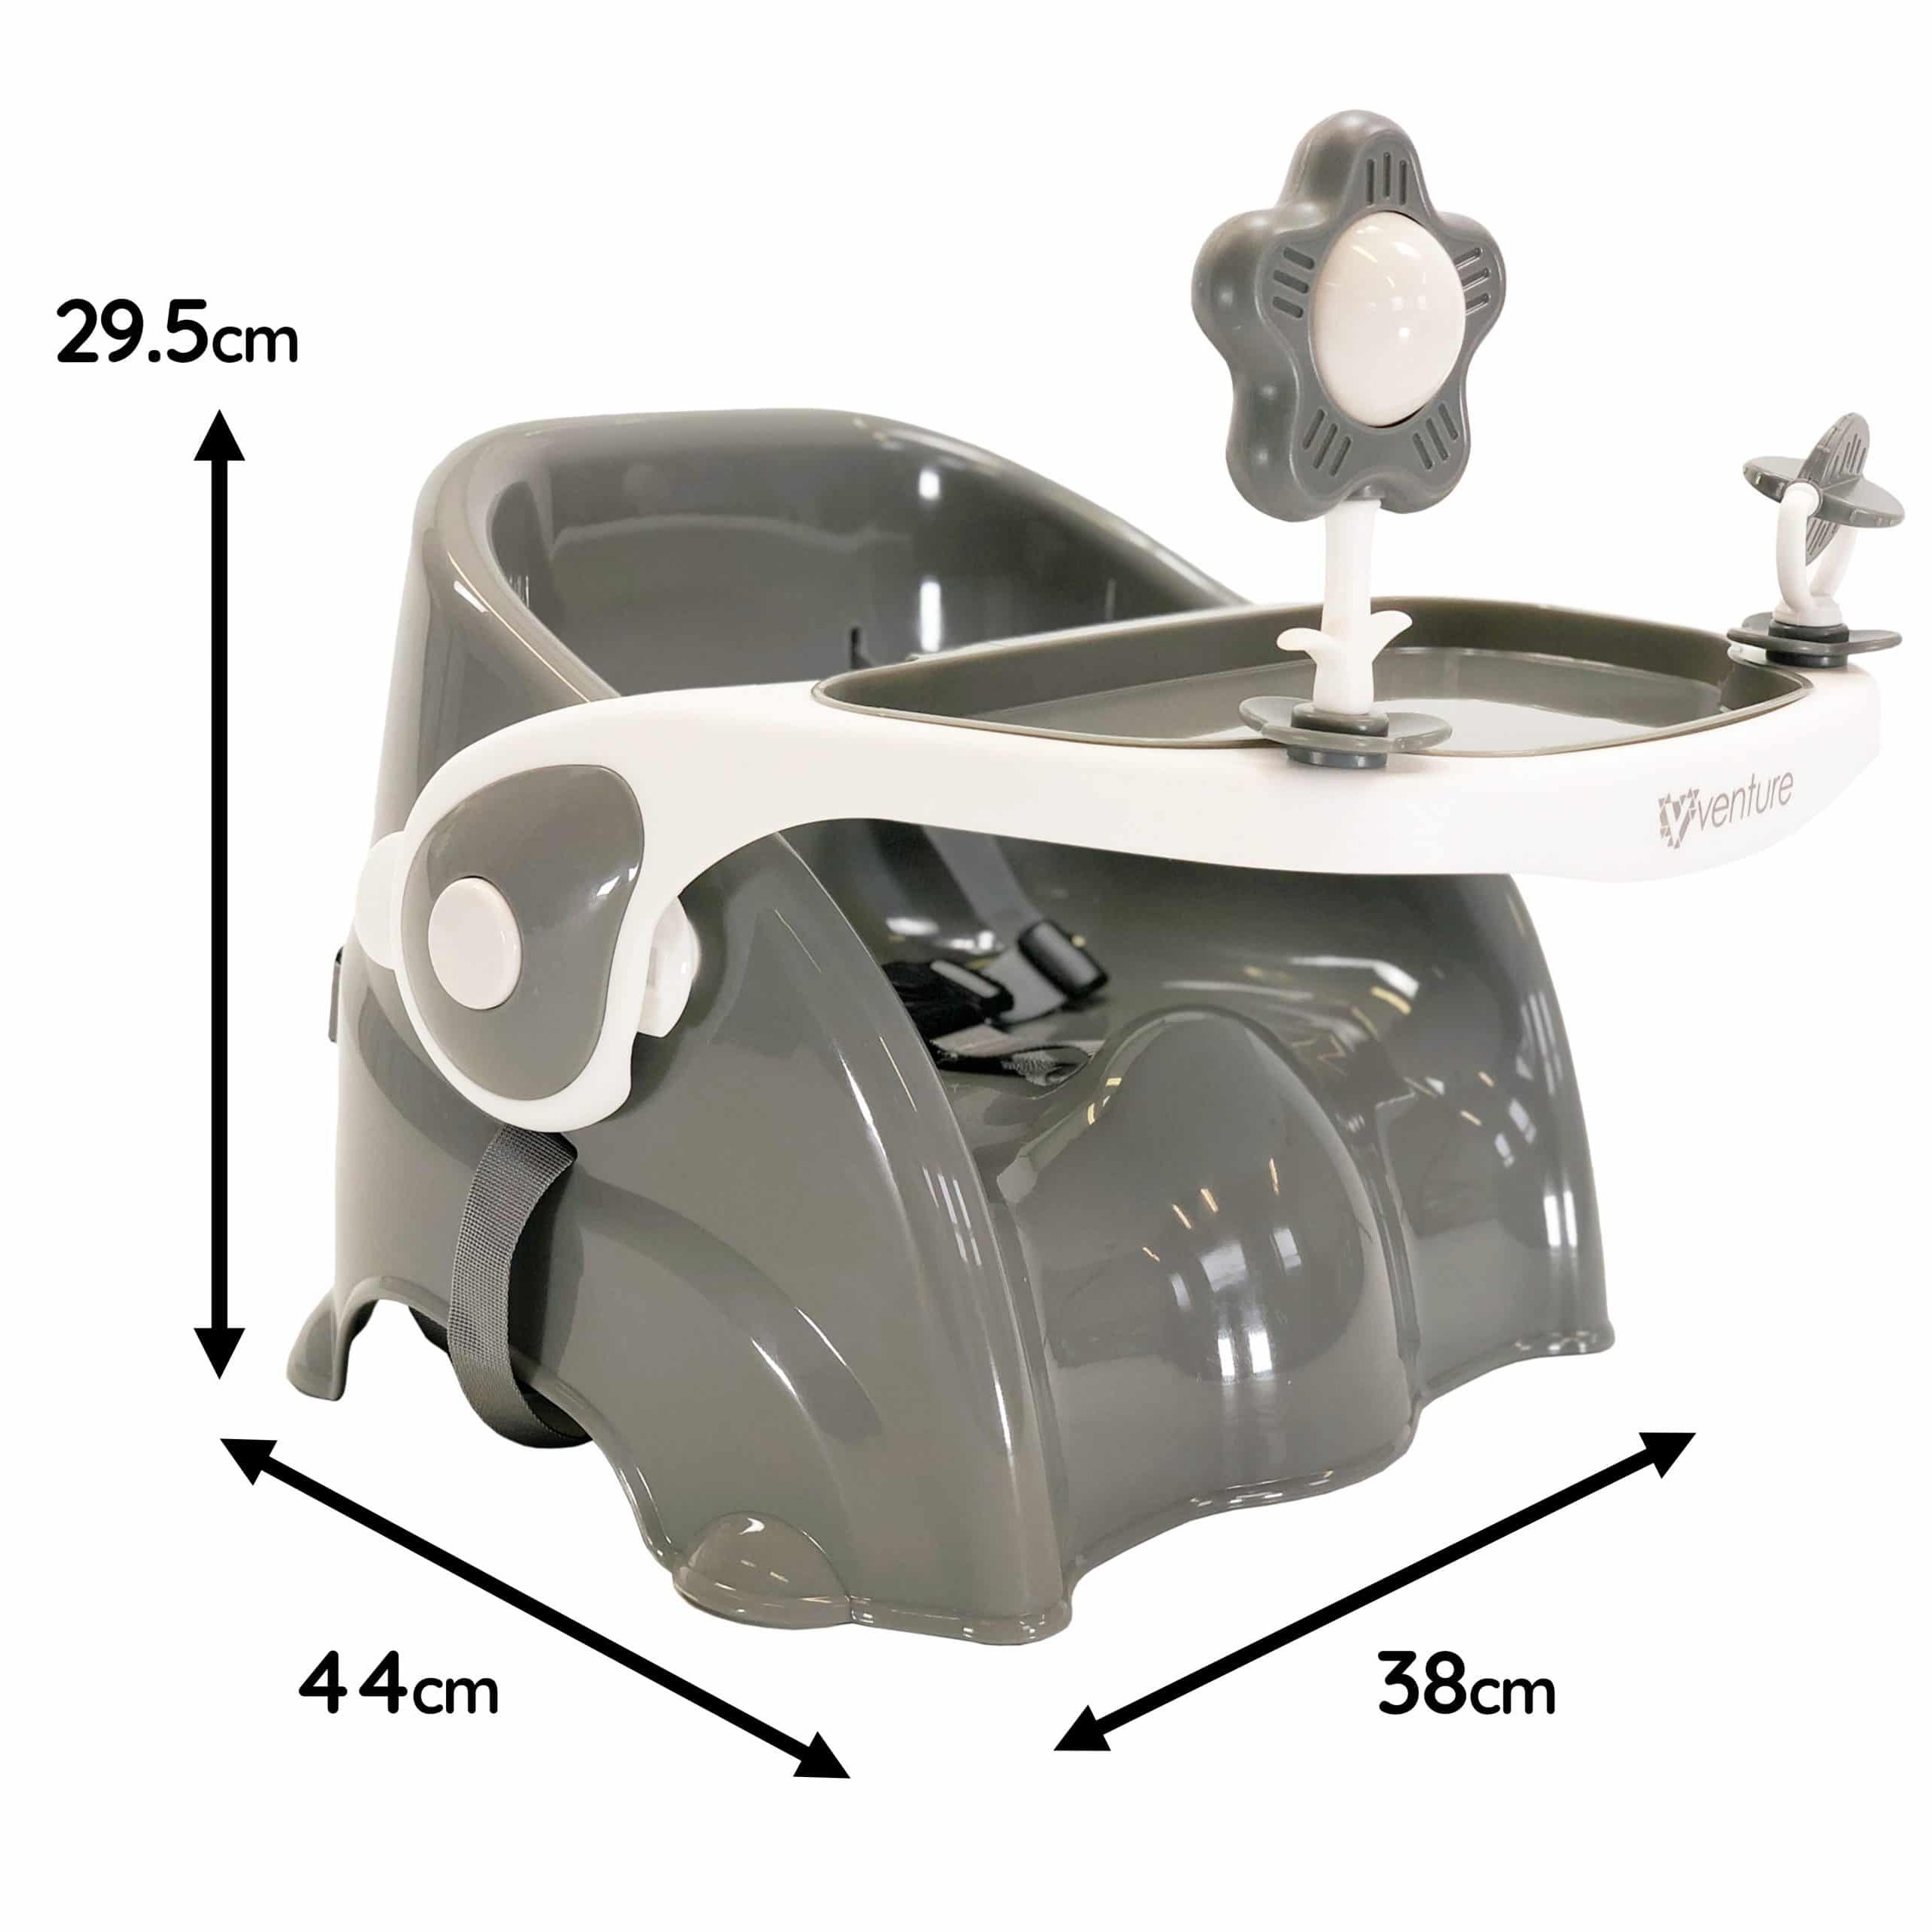 Grey Bubble Booster Seat Dimensions